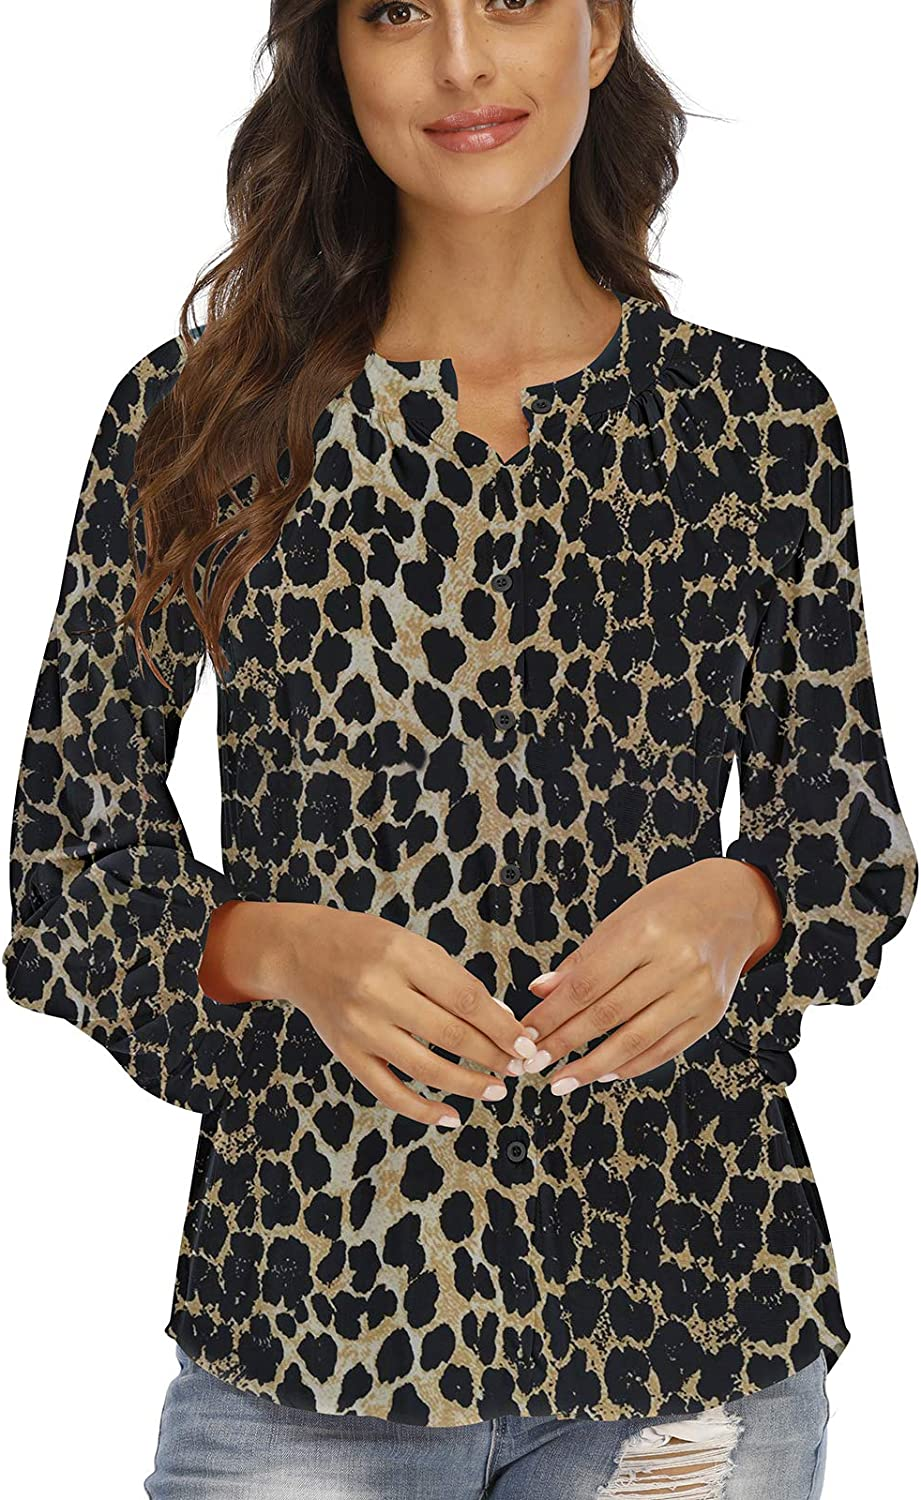 Miqieer Women's Casual Collared Button Down Shirt Flowy Blouse Puff Long Sleeve Stylish Tops